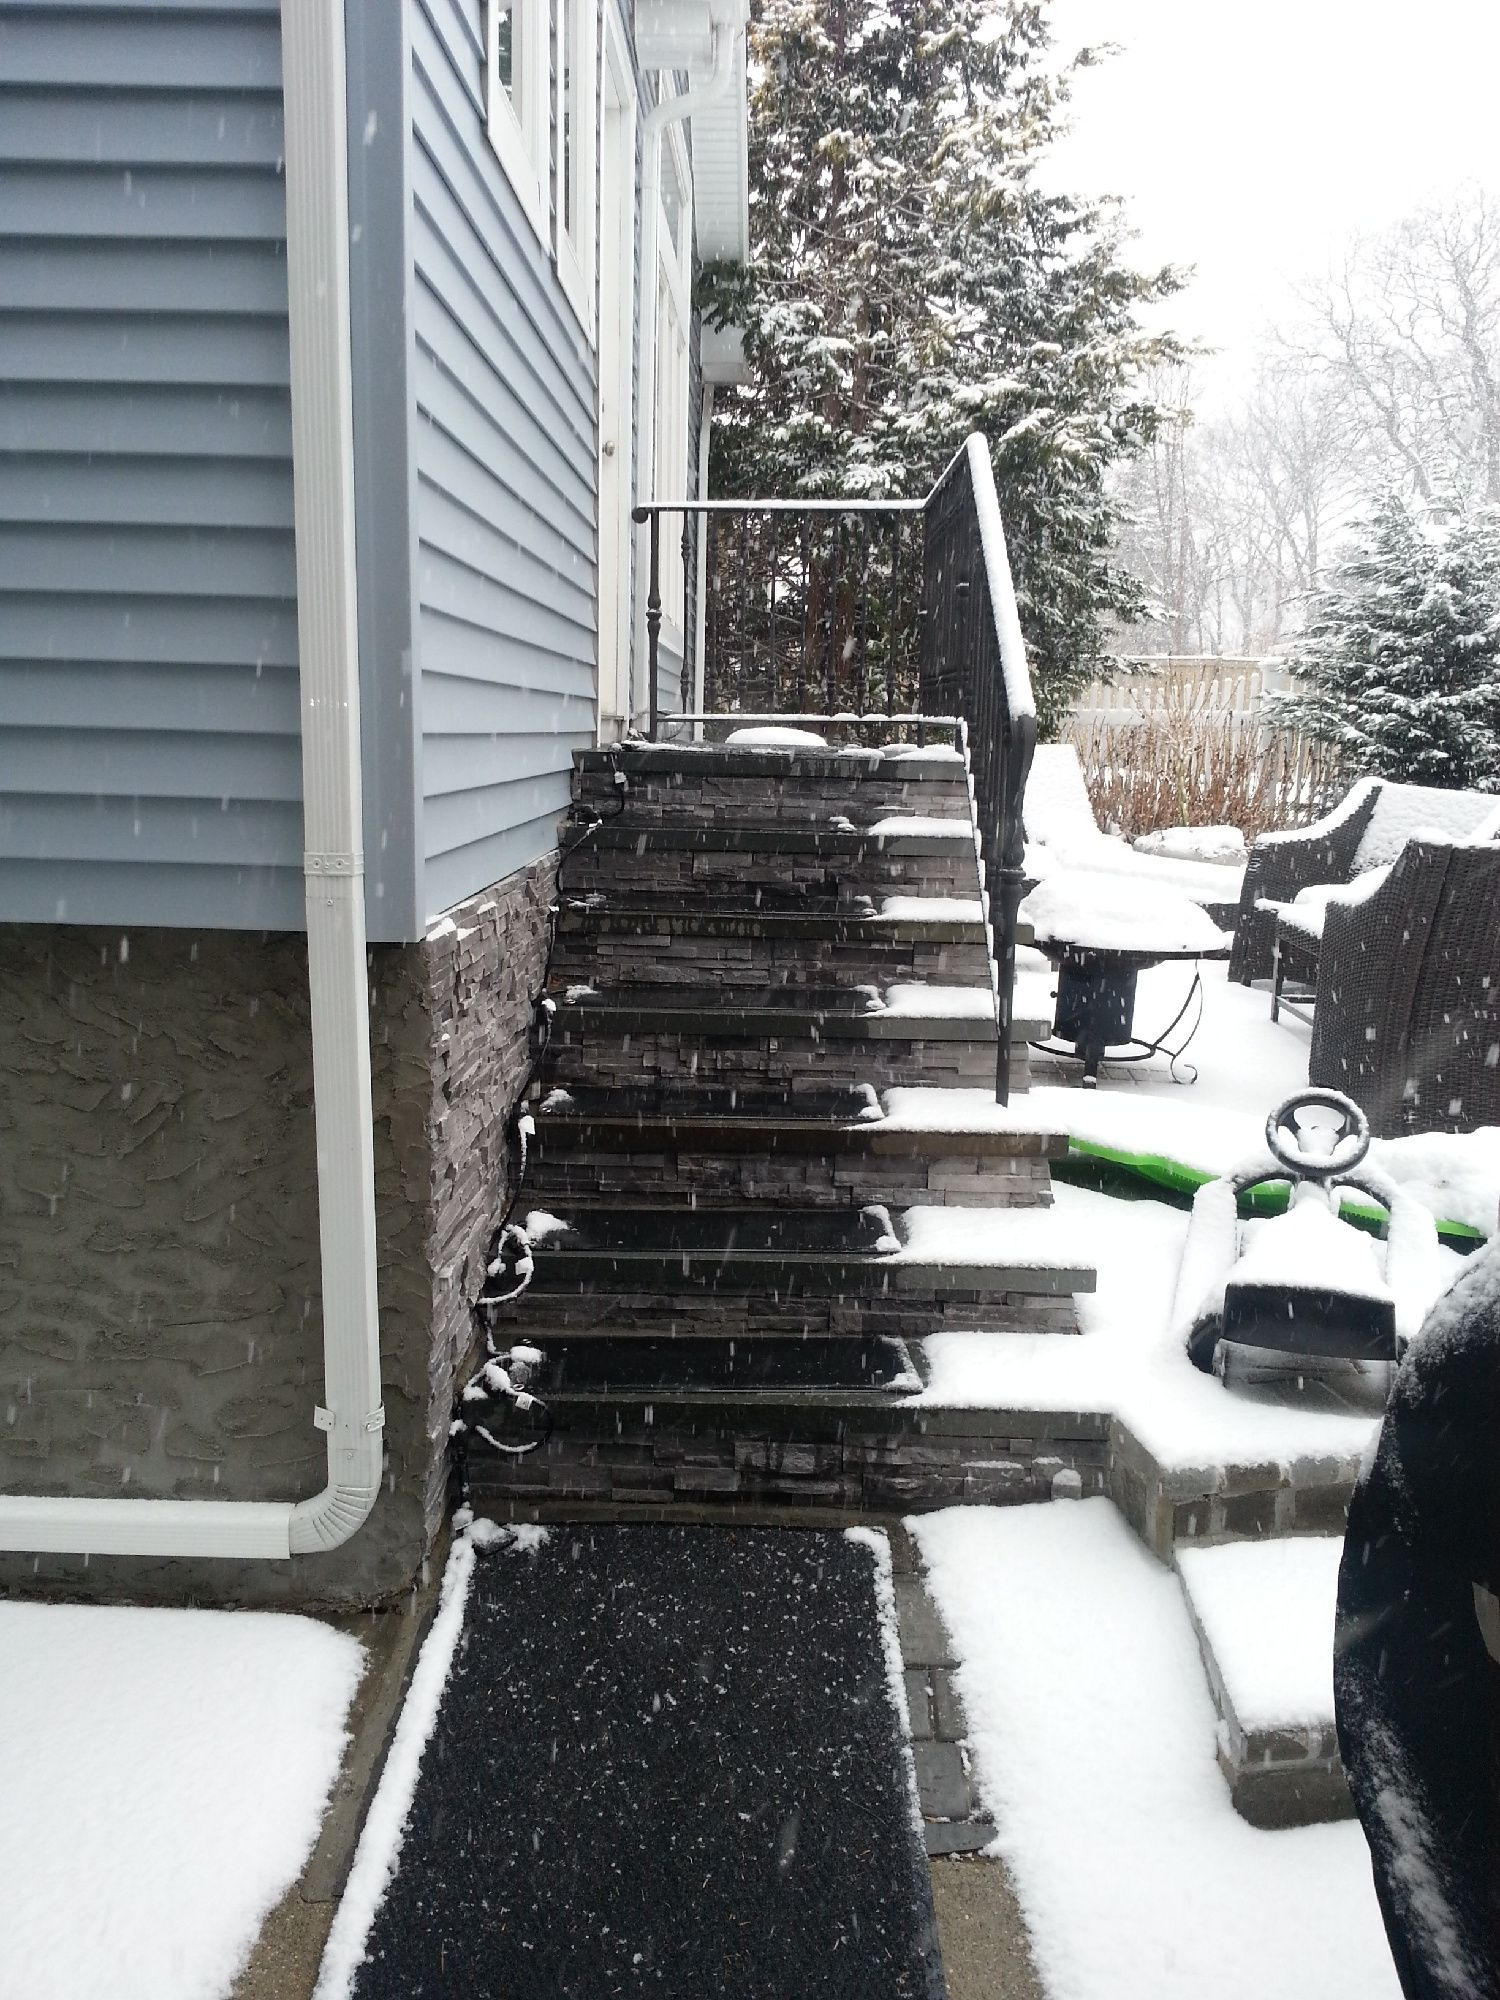 The Heattrak Homeowner Blog A Guide To Snow Removal Snow Melting Mats Home Maintenance Outdoor Stairs Snow Removal Snow Melting Mats